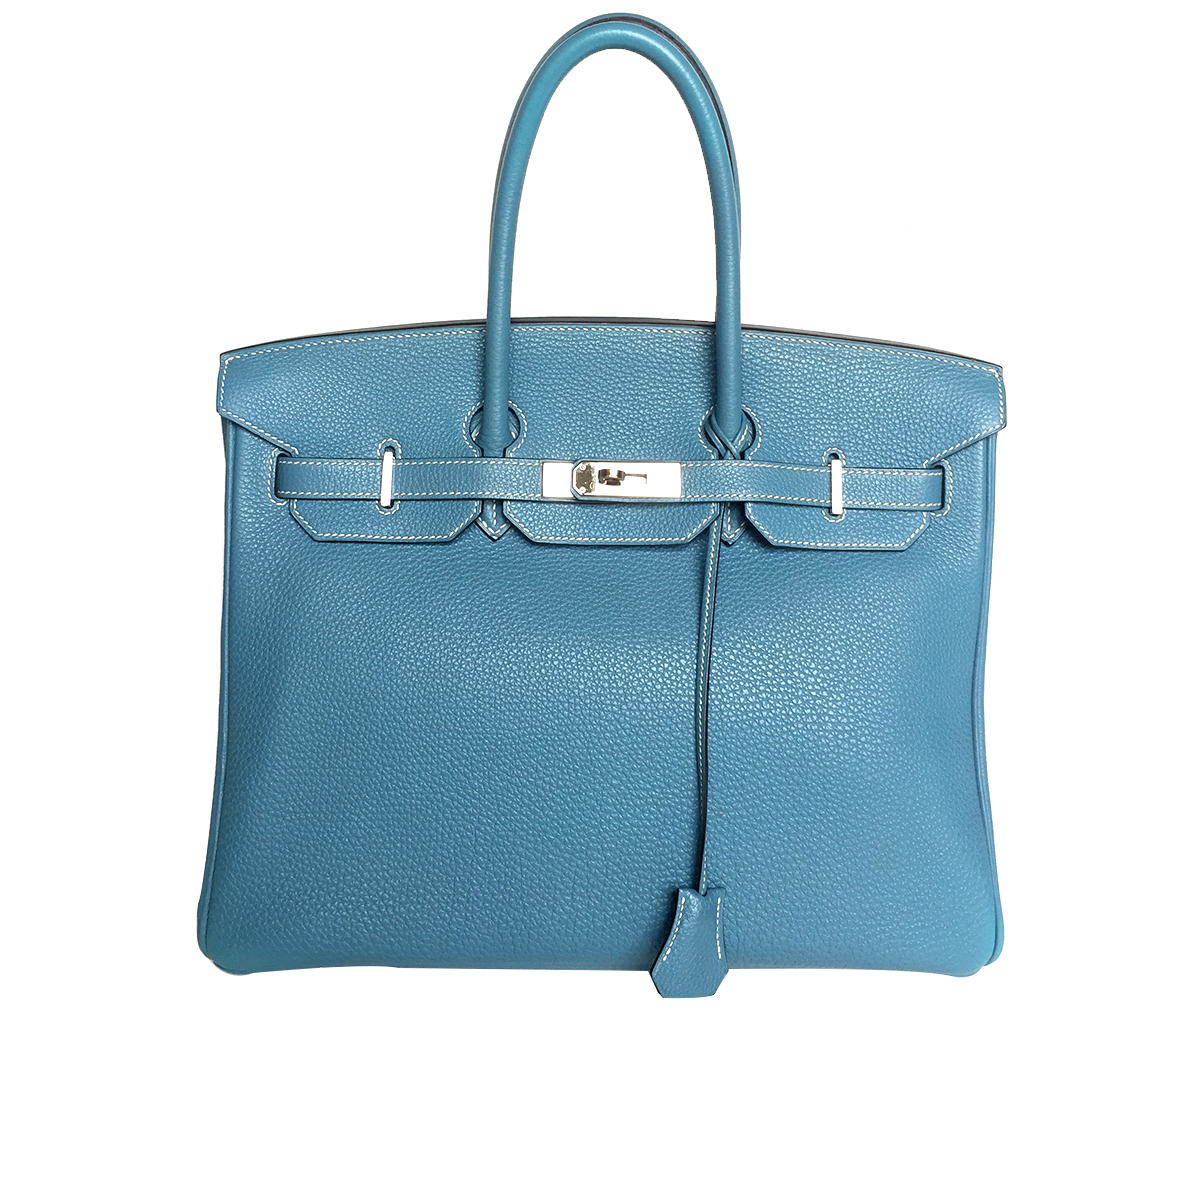 Hermès Birkin 35cm Blue Jean Togo Leather with Palladium Hardware Stamp M 2009